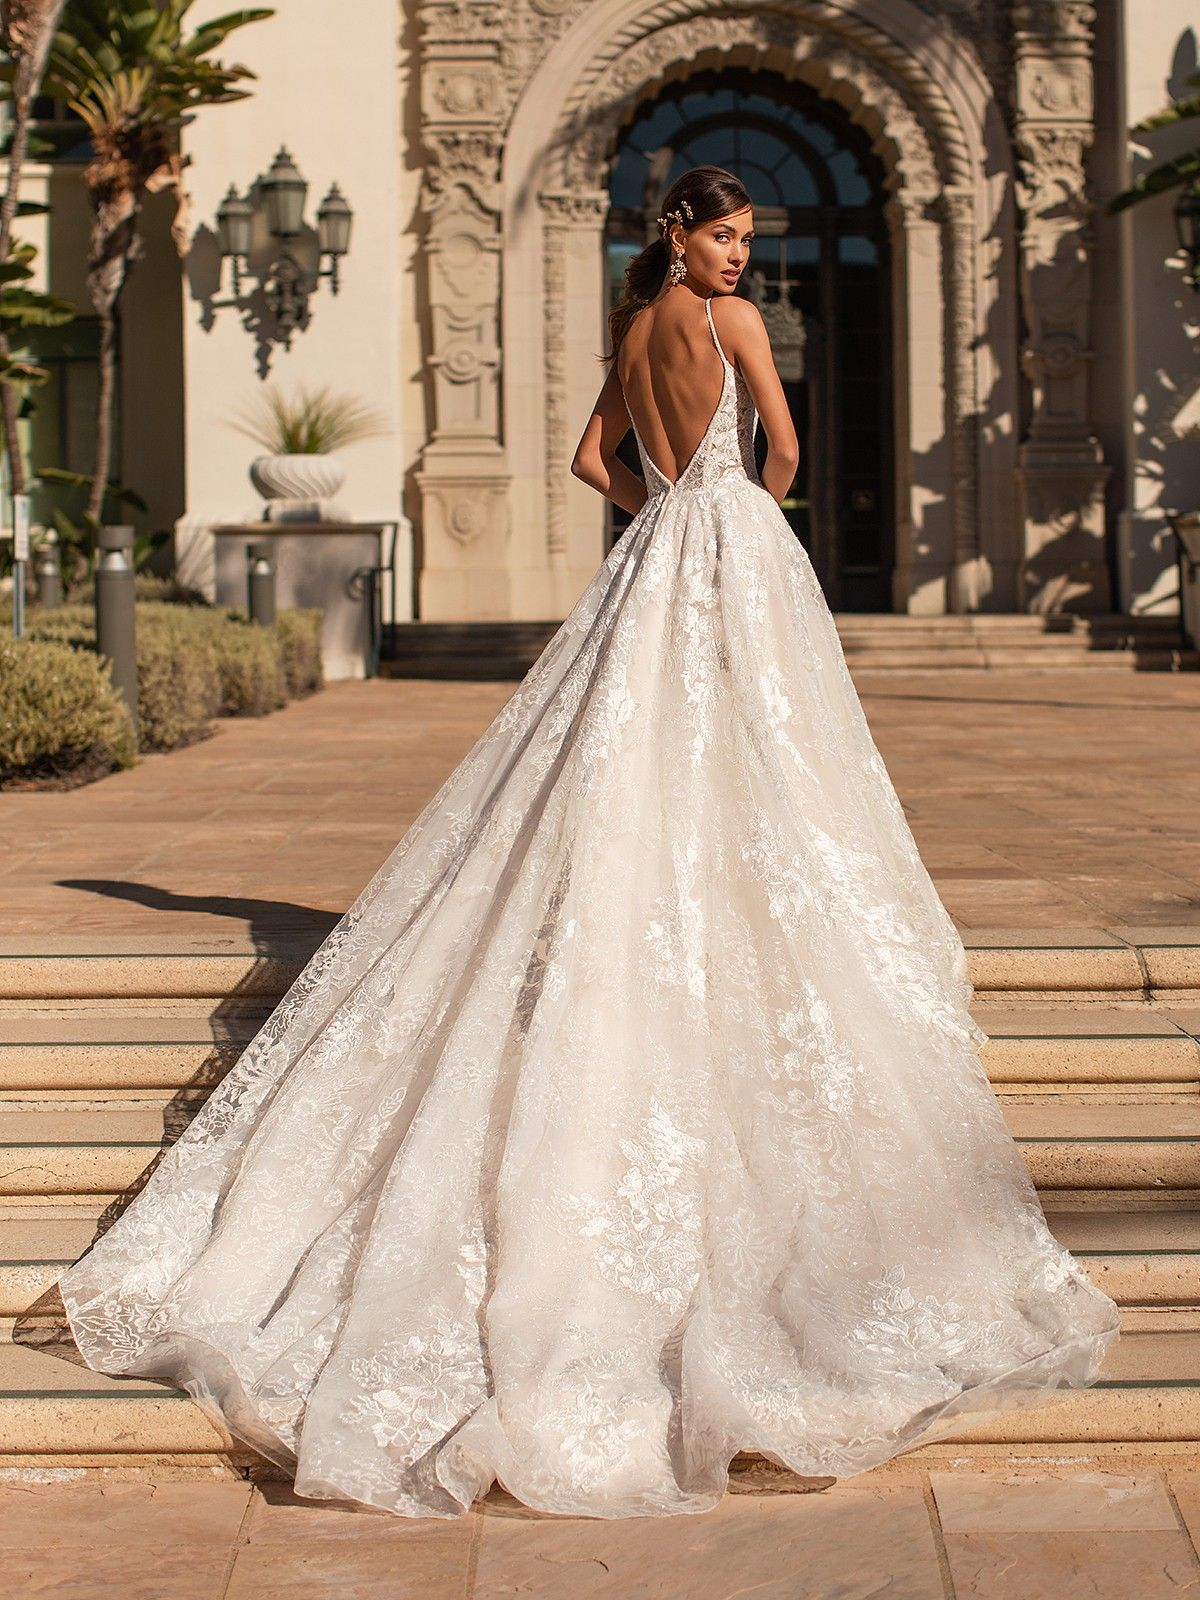 Shimmering Floral Lace Beaded A Line Wedding Gown H1451 In 2020 Sparkly Wedding Dress A Line Wedding Dress Aline Wedding Dress